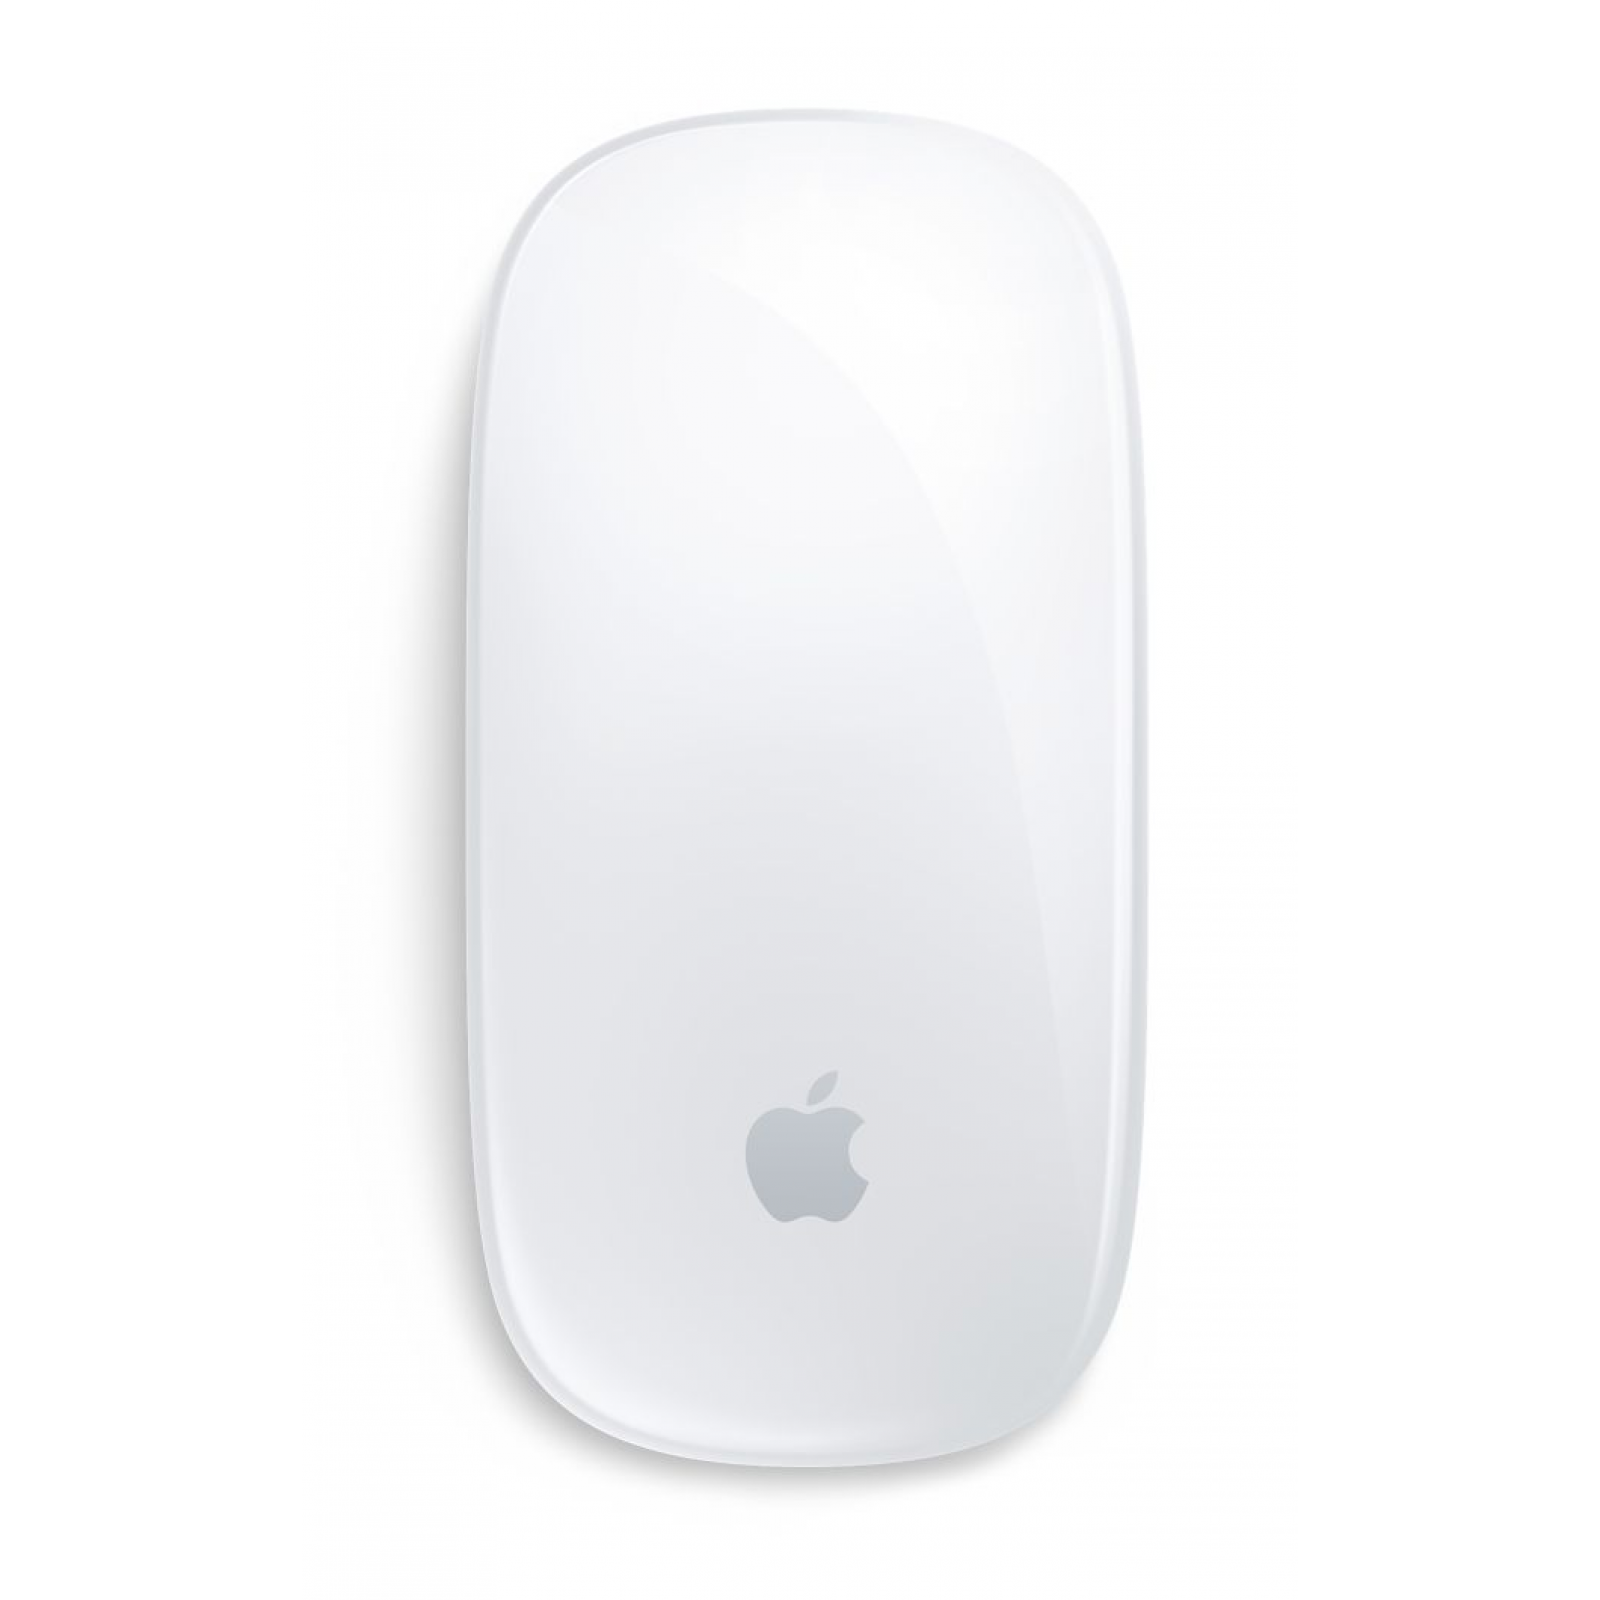 Apple magic . Imac mouse png picture free stock